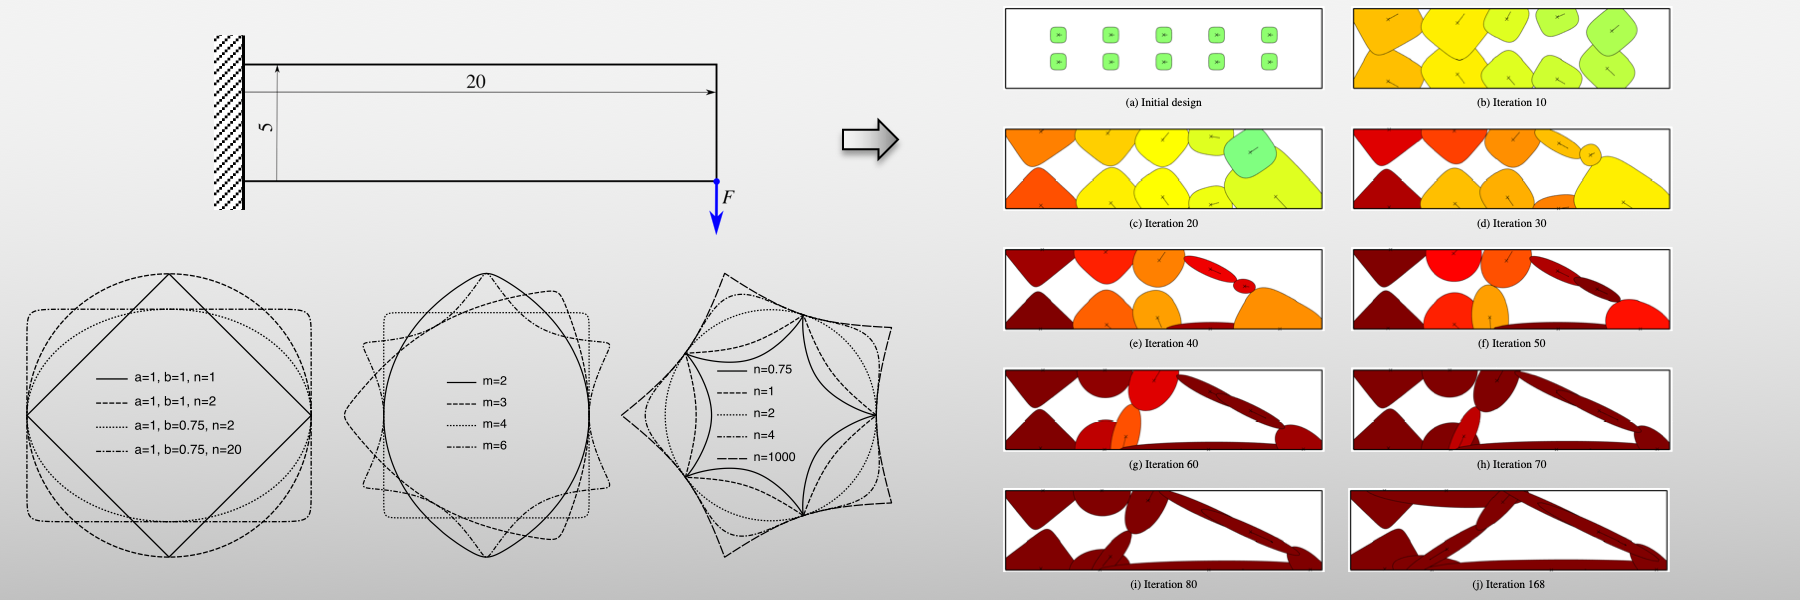 This slide shows an example of topology optimization of structures made of super shapes